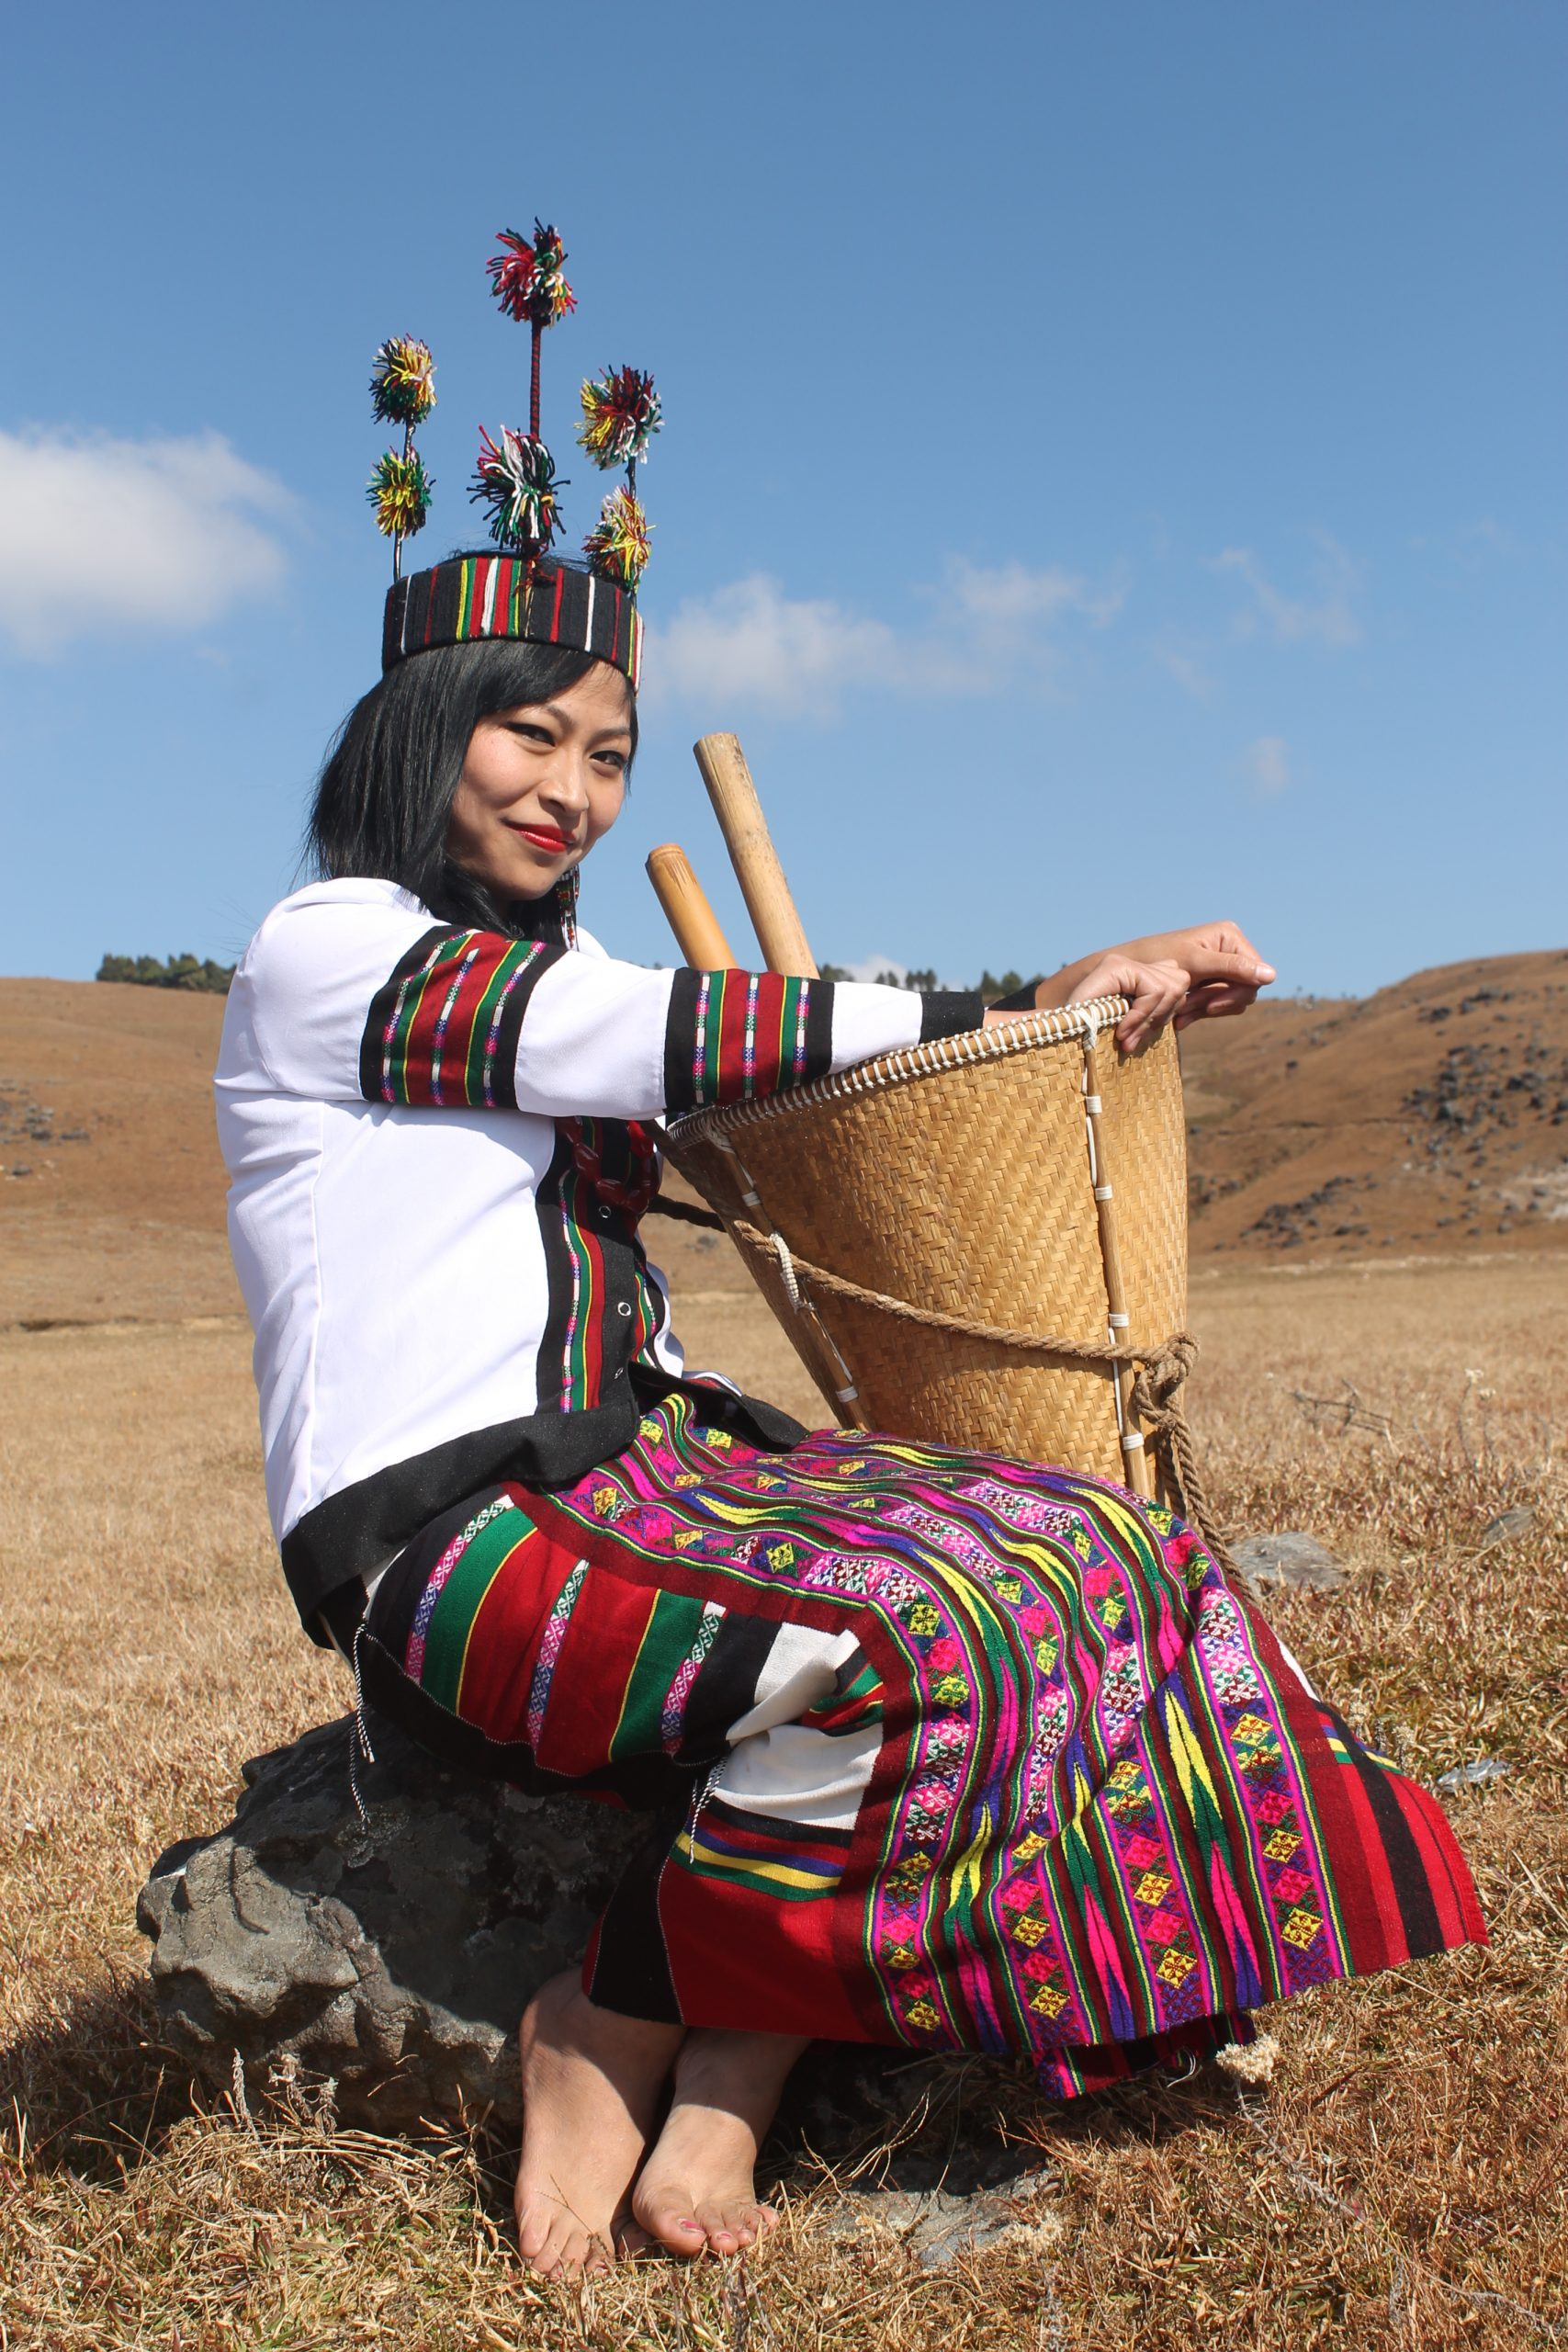 A girl in cultural dress from Meghalaya, India